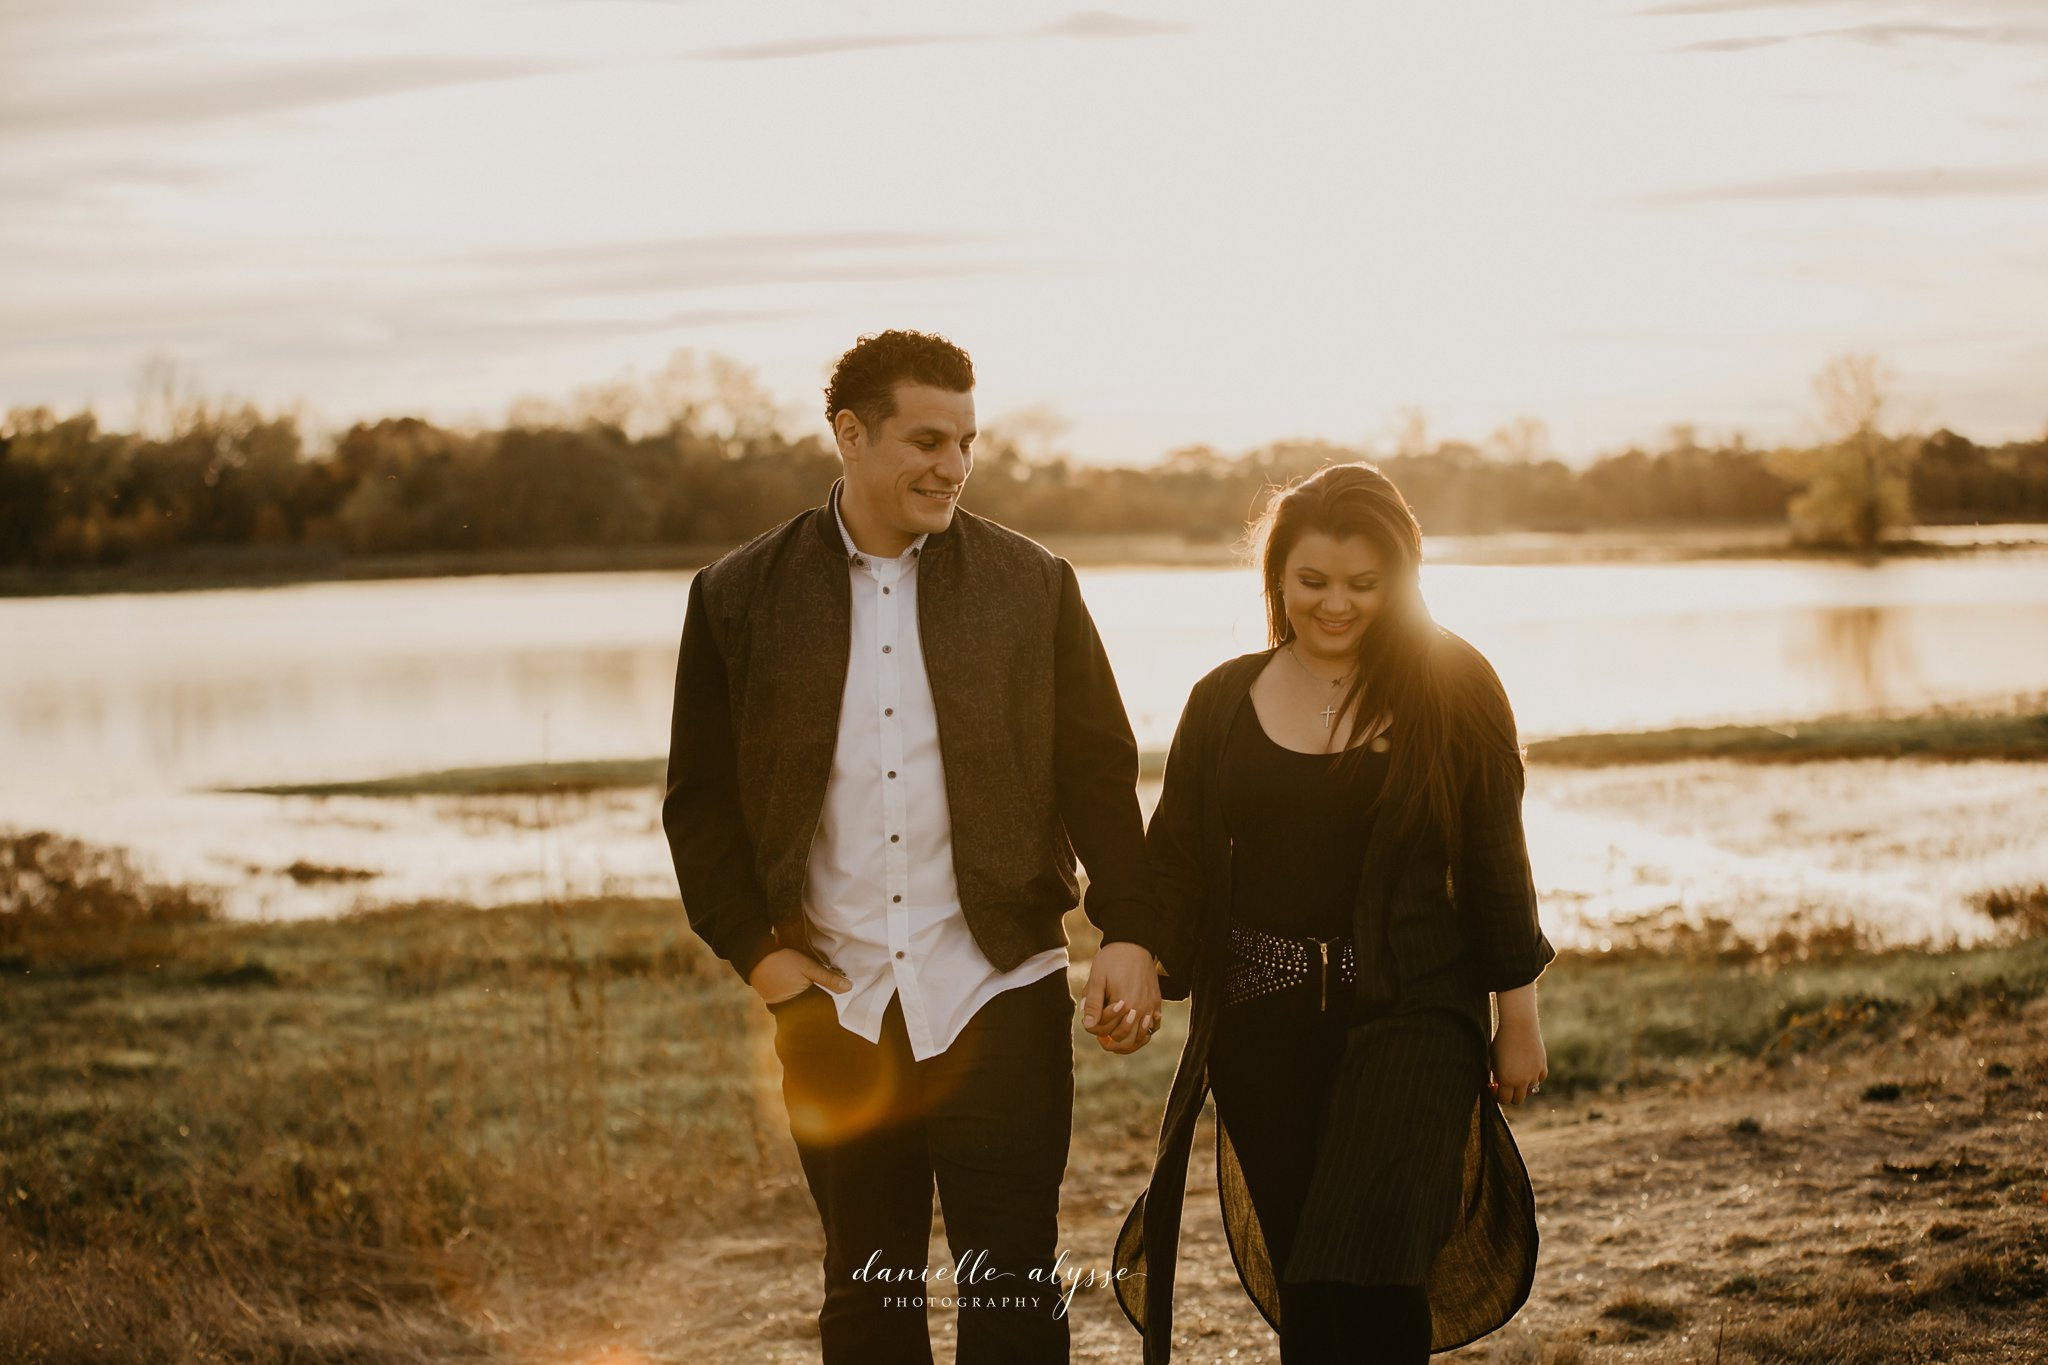 181125_fall_family_portrait_cosumnes_river_preserve_brittney_danielle_alysse_photography_29_WEB.jpg